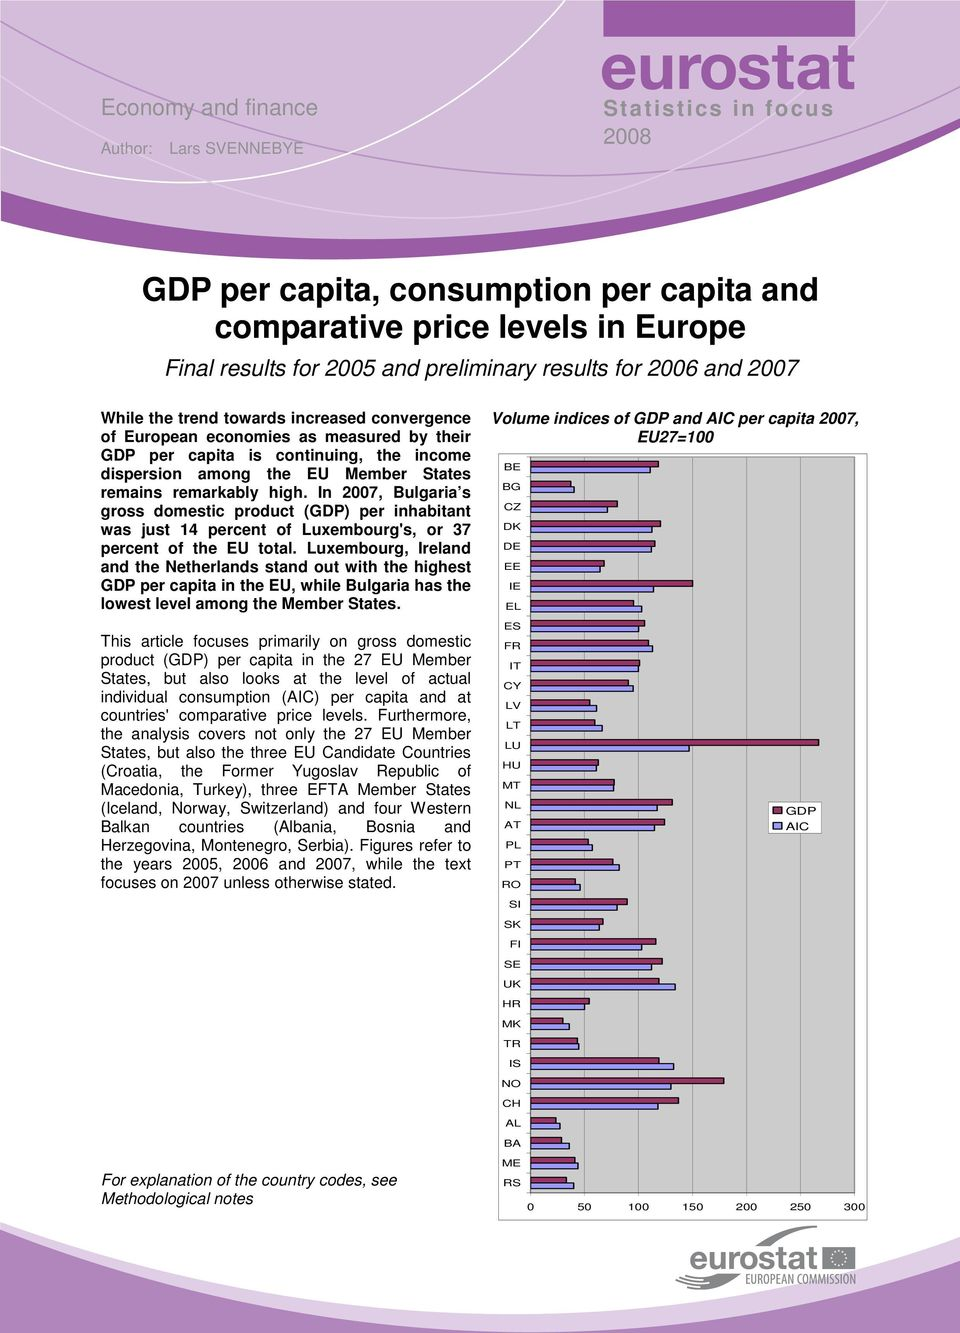 remarkably high. In 2007, Bulgaria s gross domestic product (GDP) per inhabitant was just 14 percent of Luxembourg's, or 37 percent of the EU total.